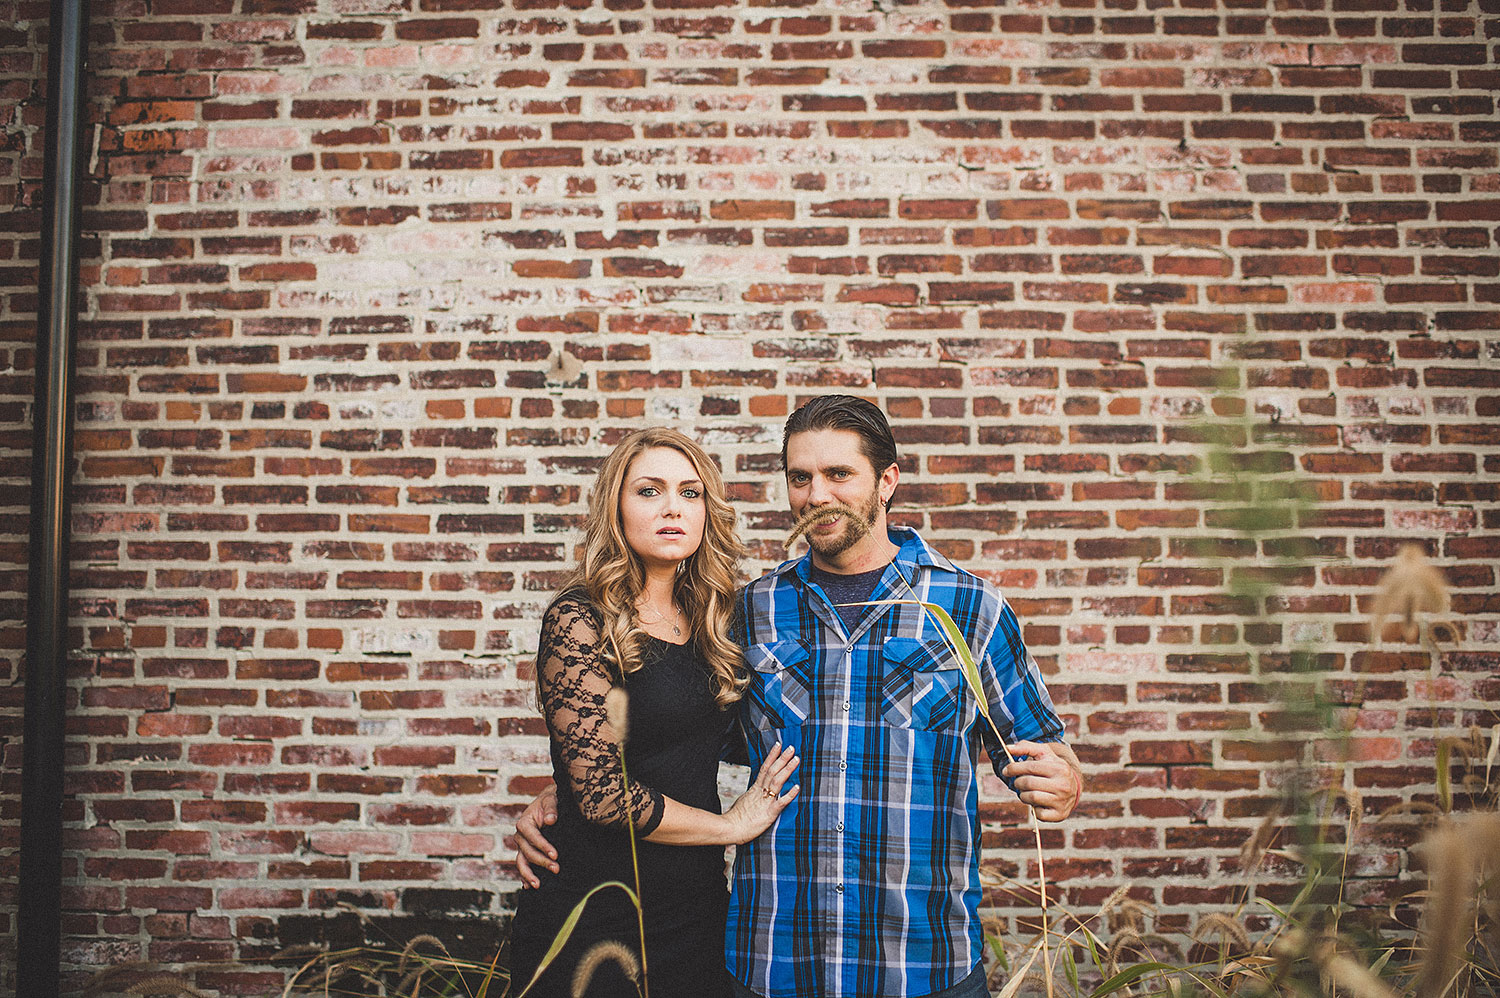 pat-robinson-photography-wilmington-engagement-session-6.jpg